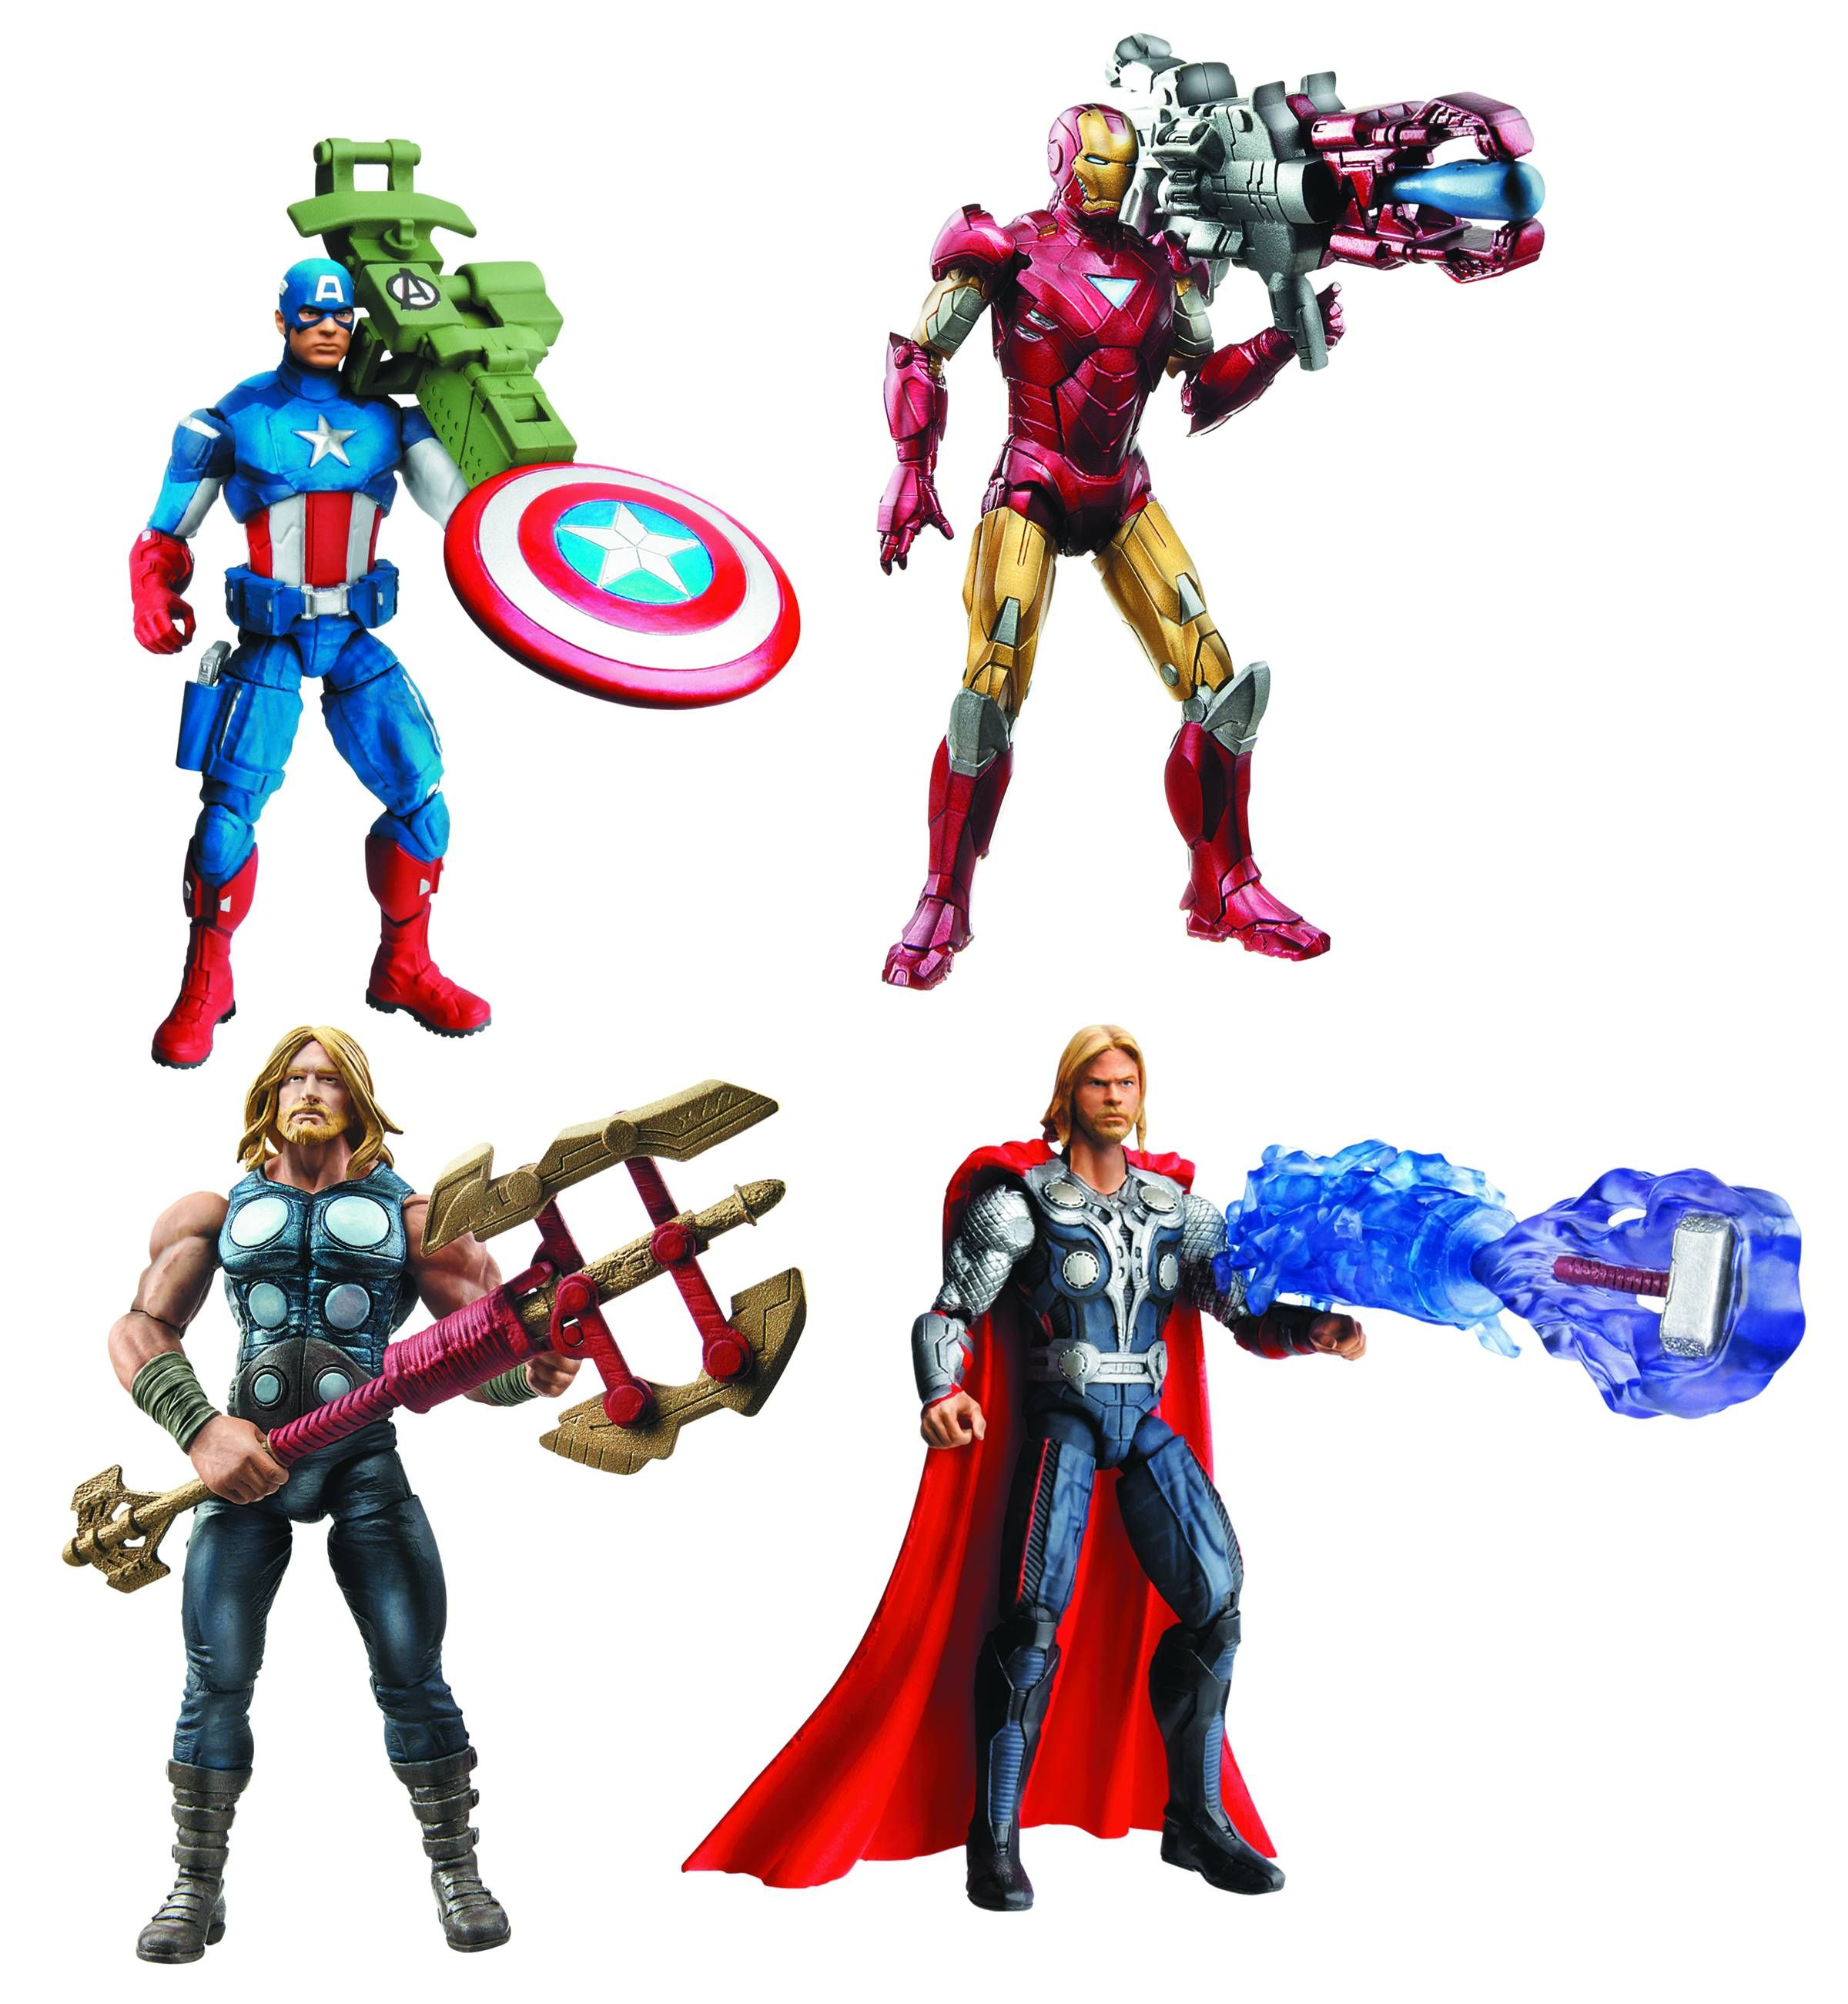 THE AVENGERS Toy Images Featuring Hulk, Iron Man, and ...